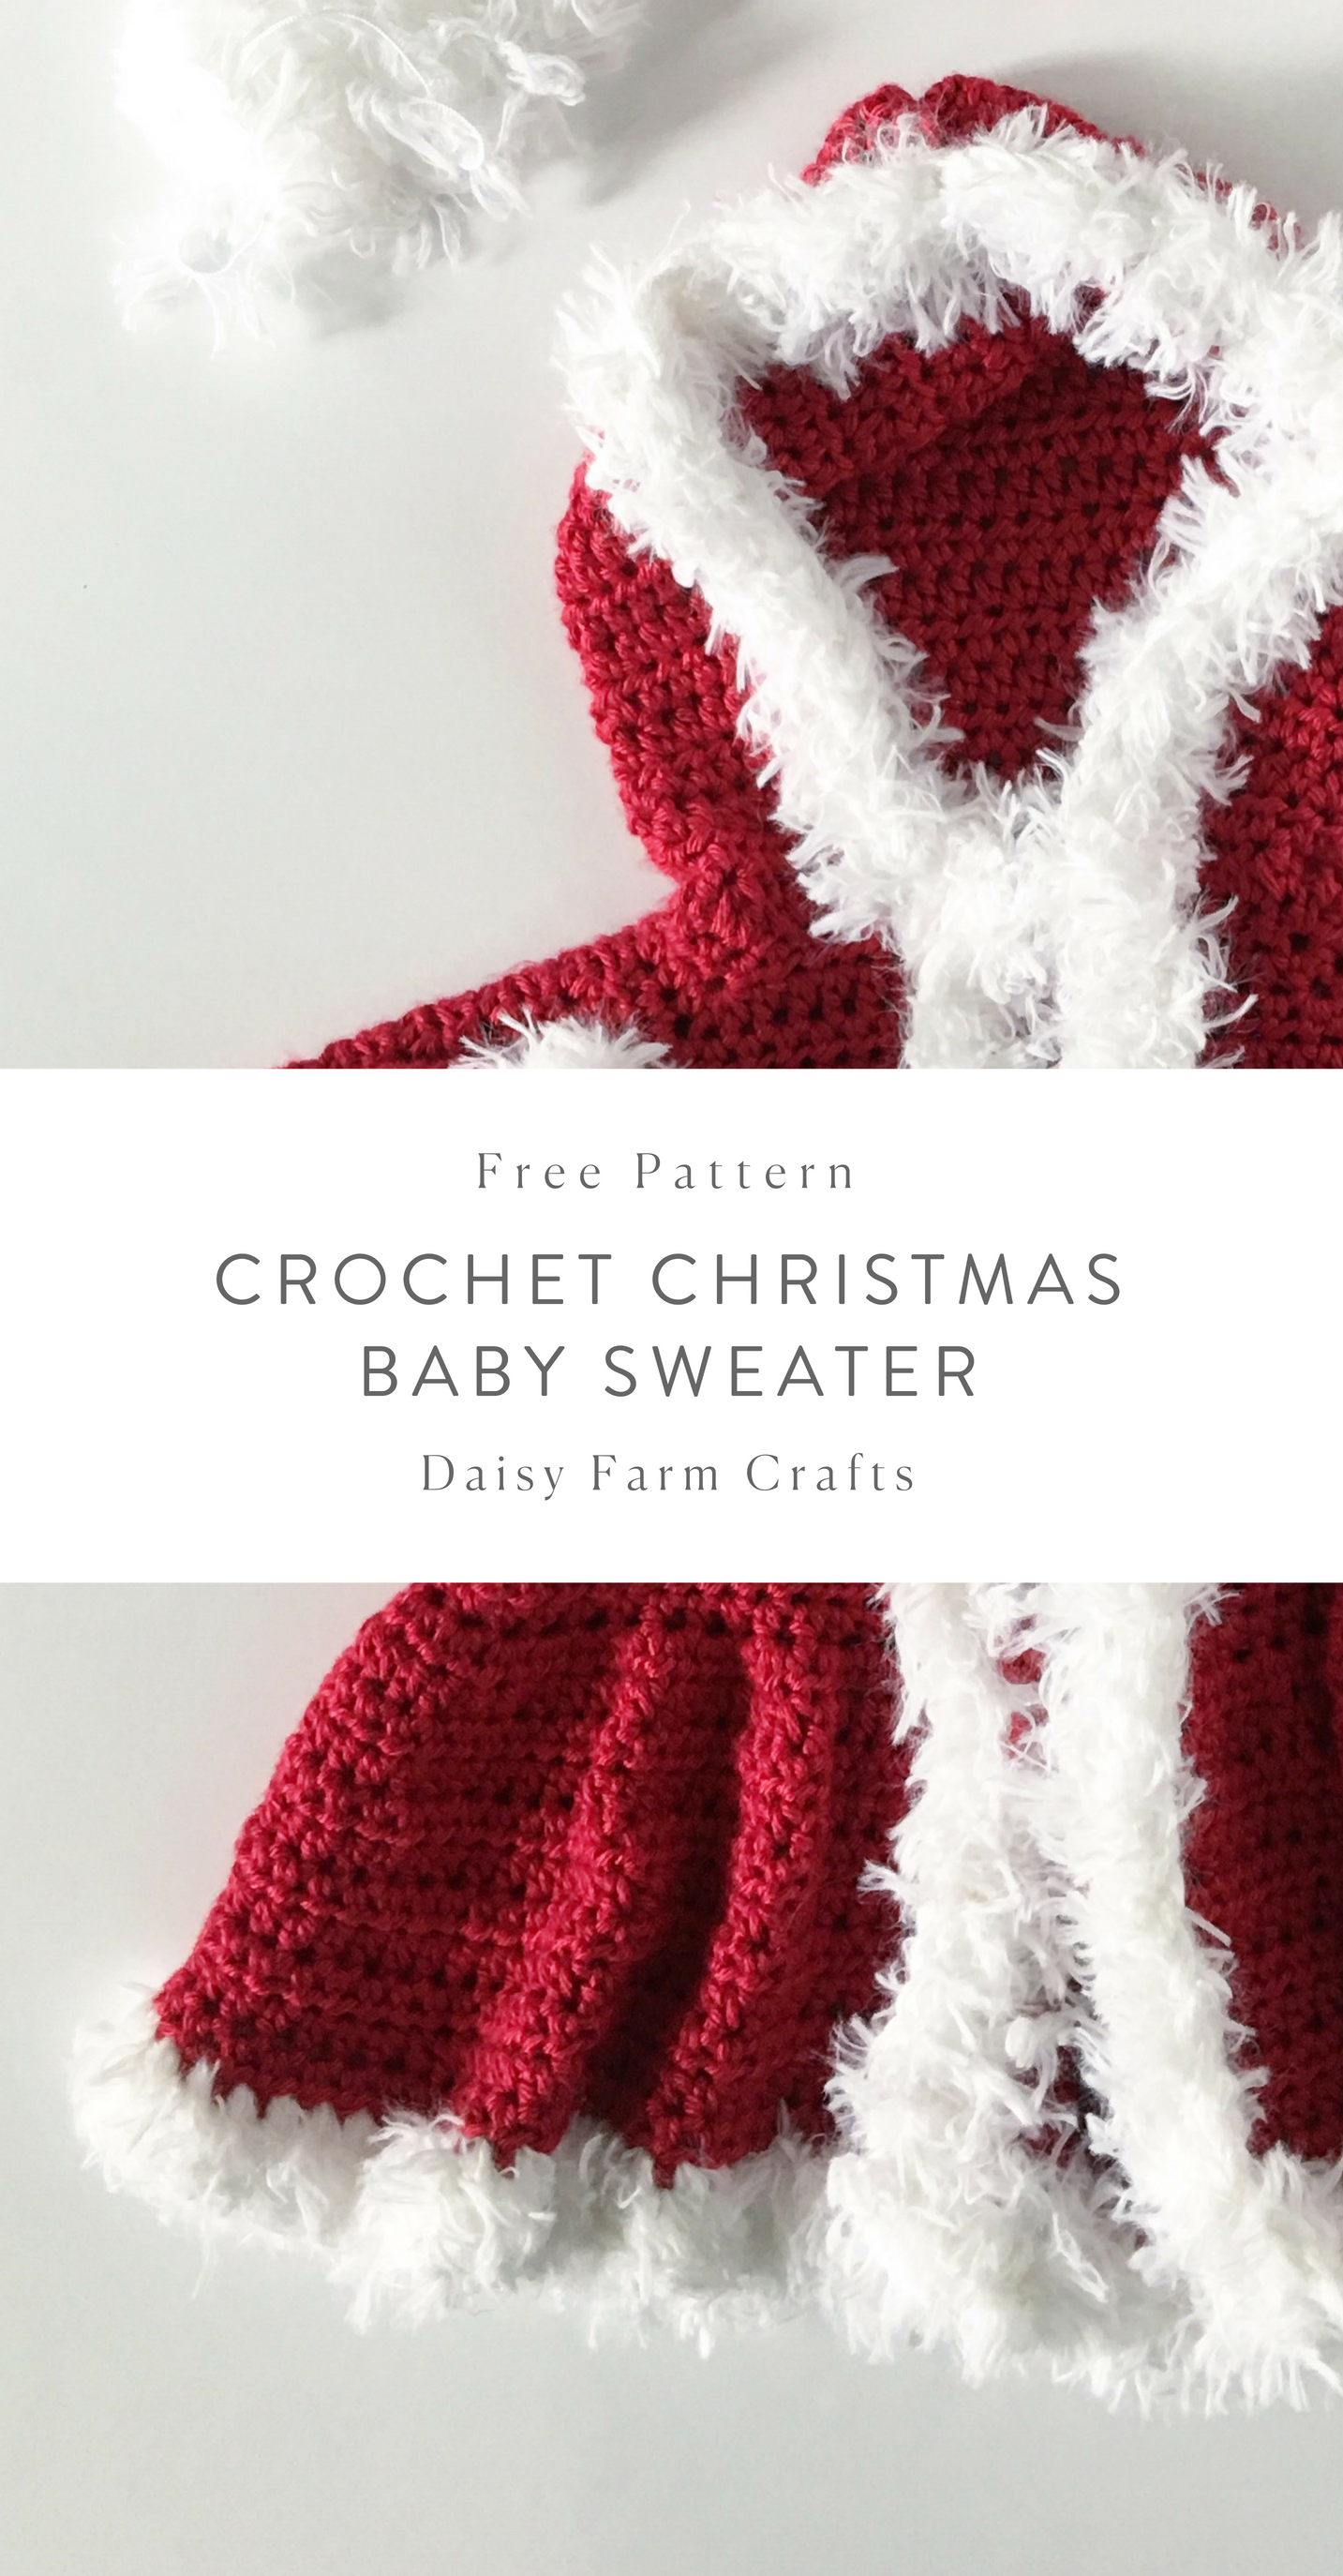 Free Pattern - Crochet Christmas Baby Sweater #crochet | Crochet ...